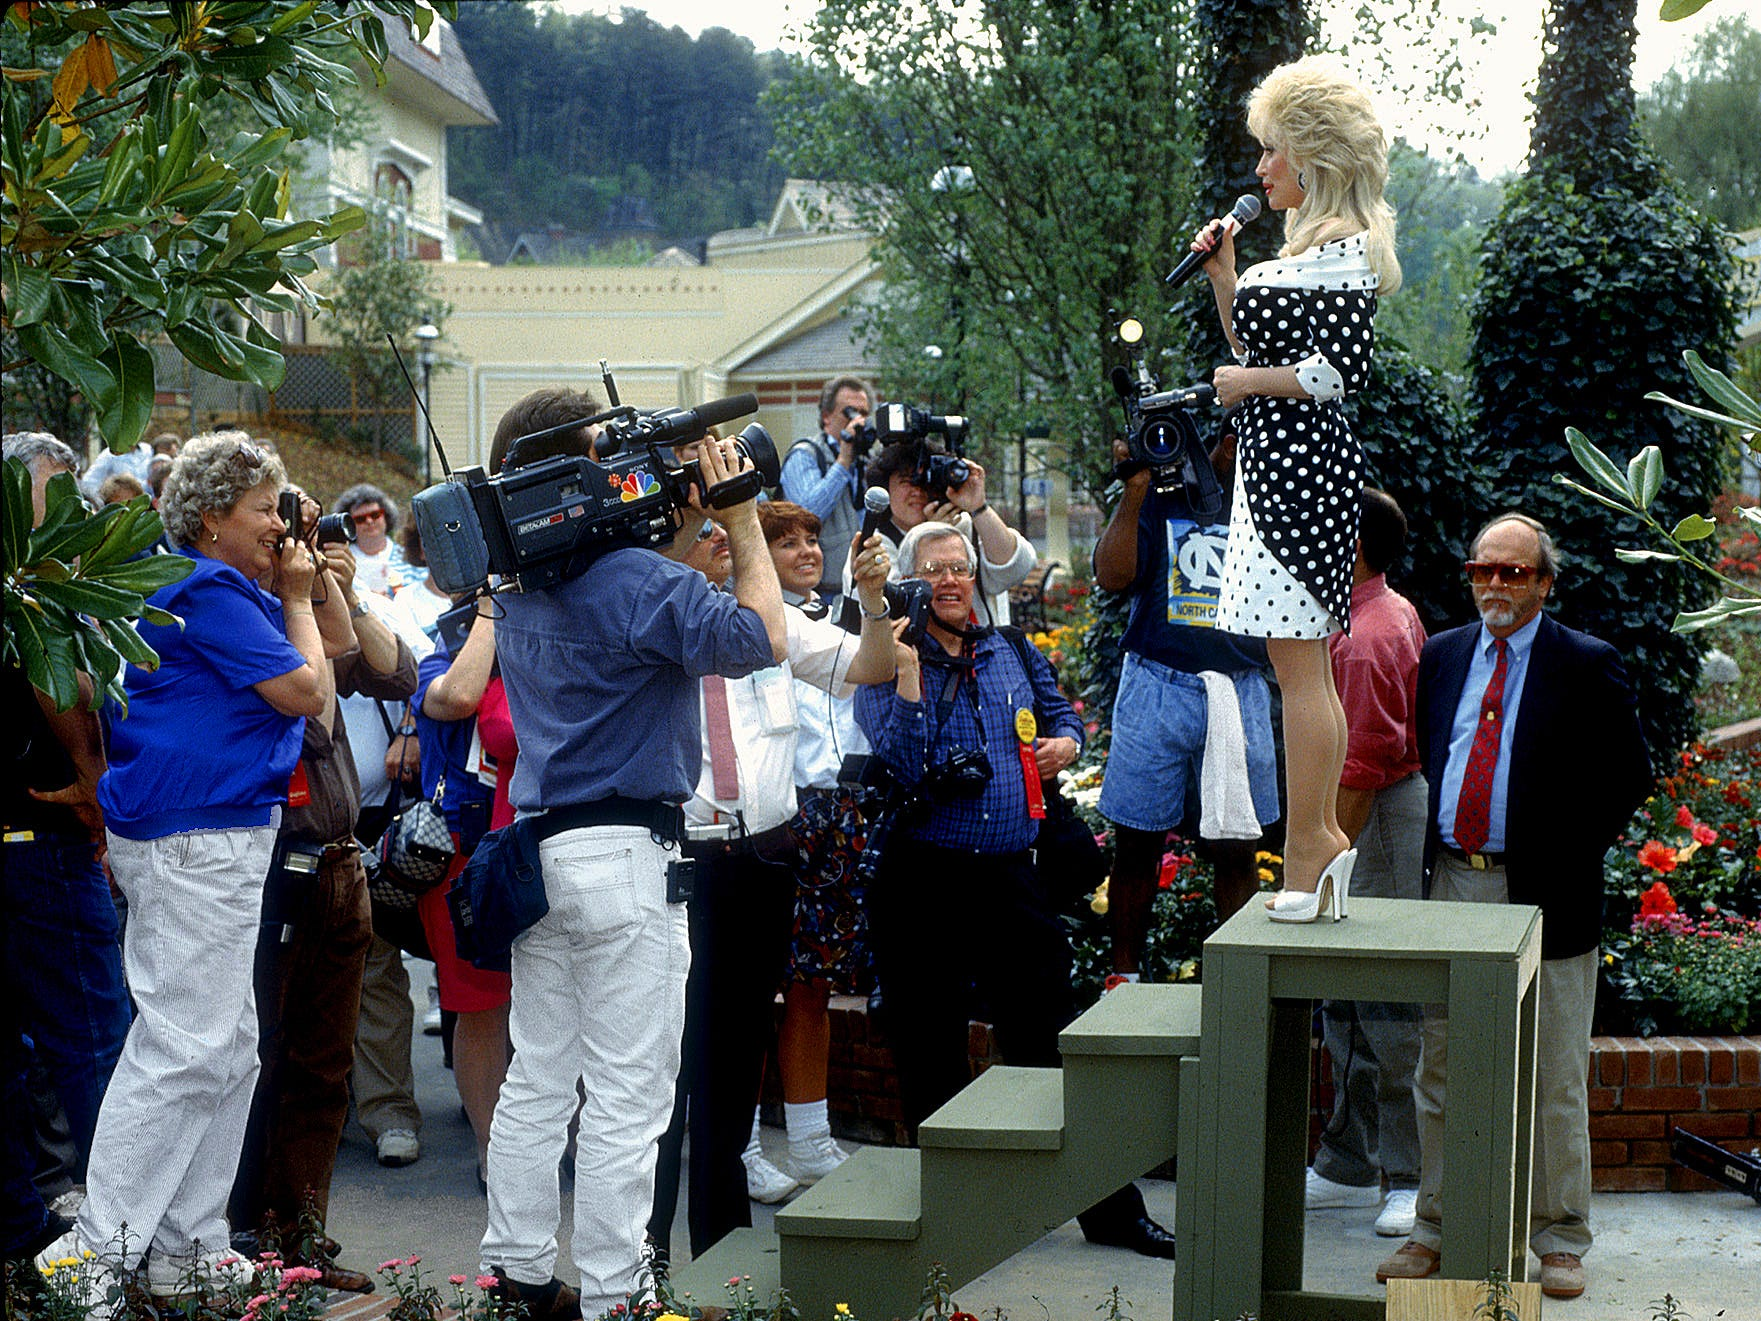 Talking to the media on April 25, 1992, Dolly Parton marks the expansion of her theme park.